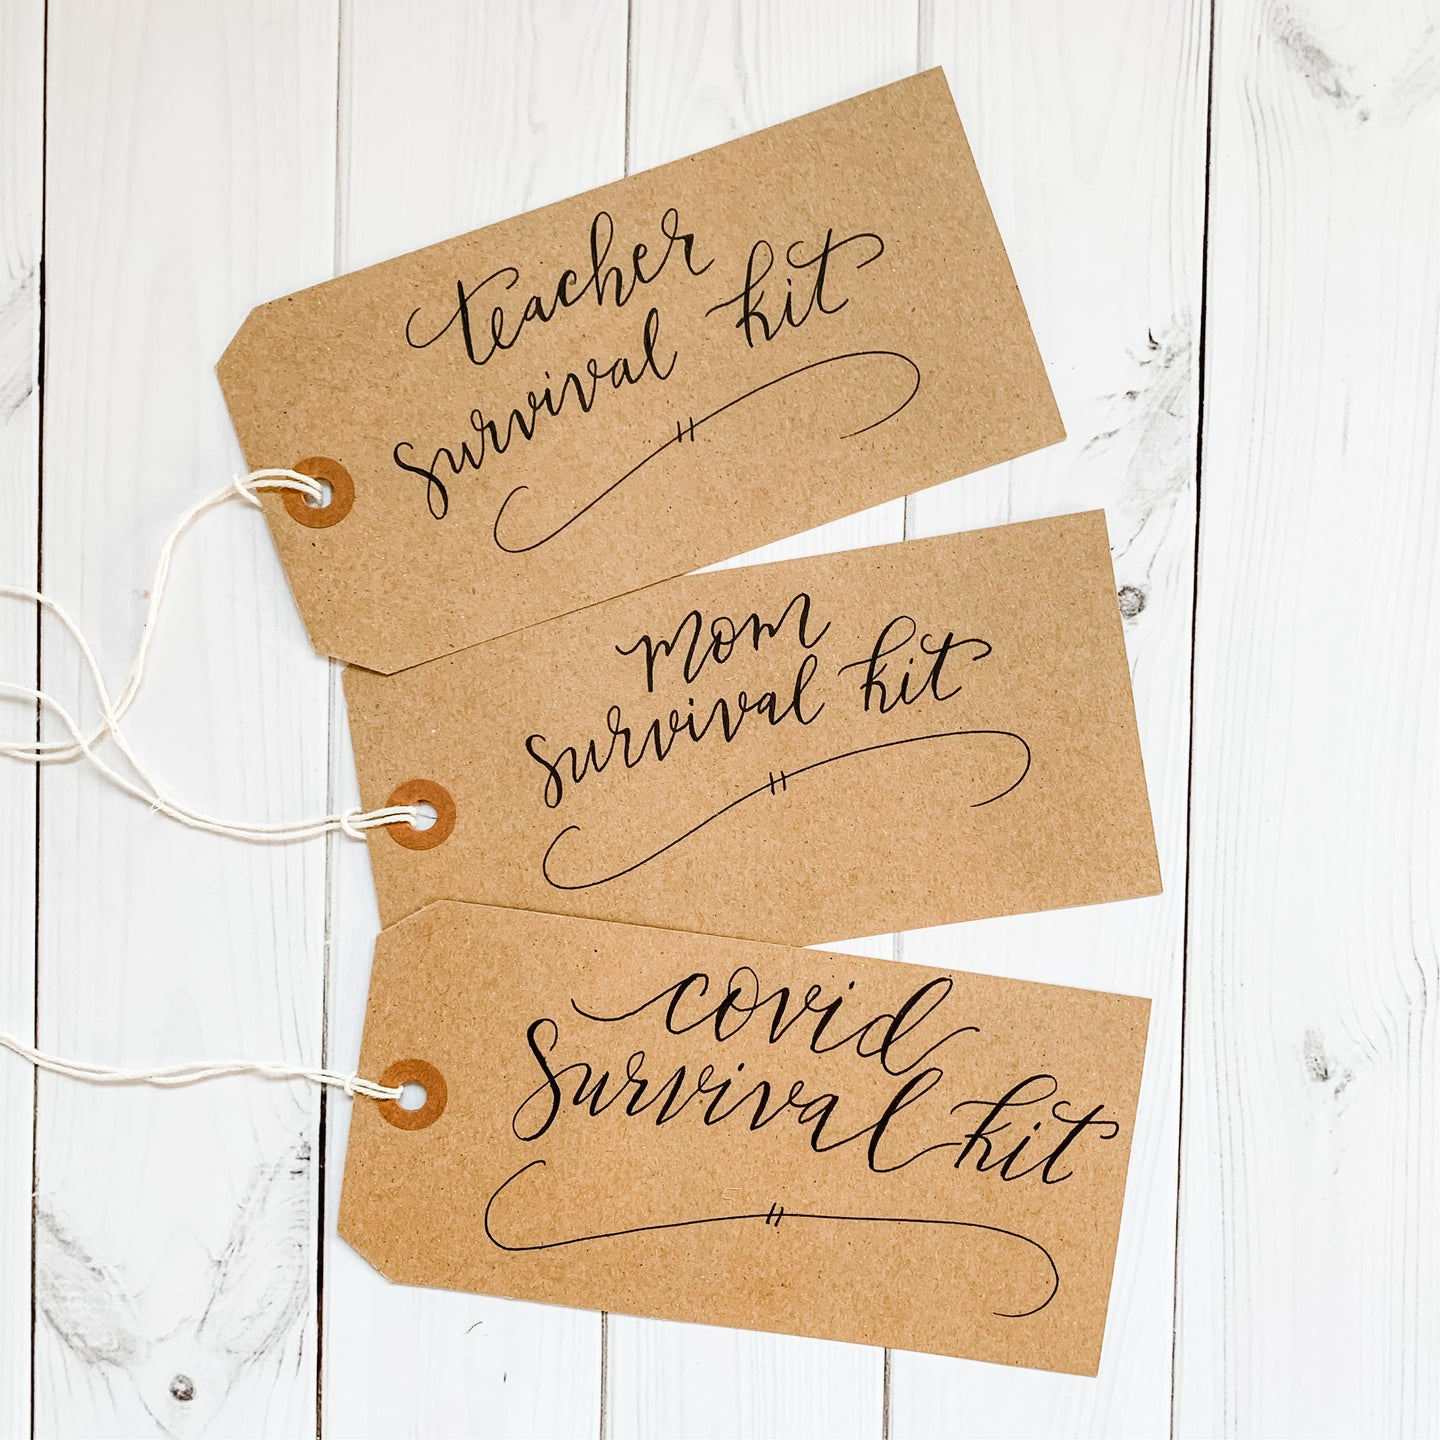 Hand written gift tag for Holiday Gift Sets